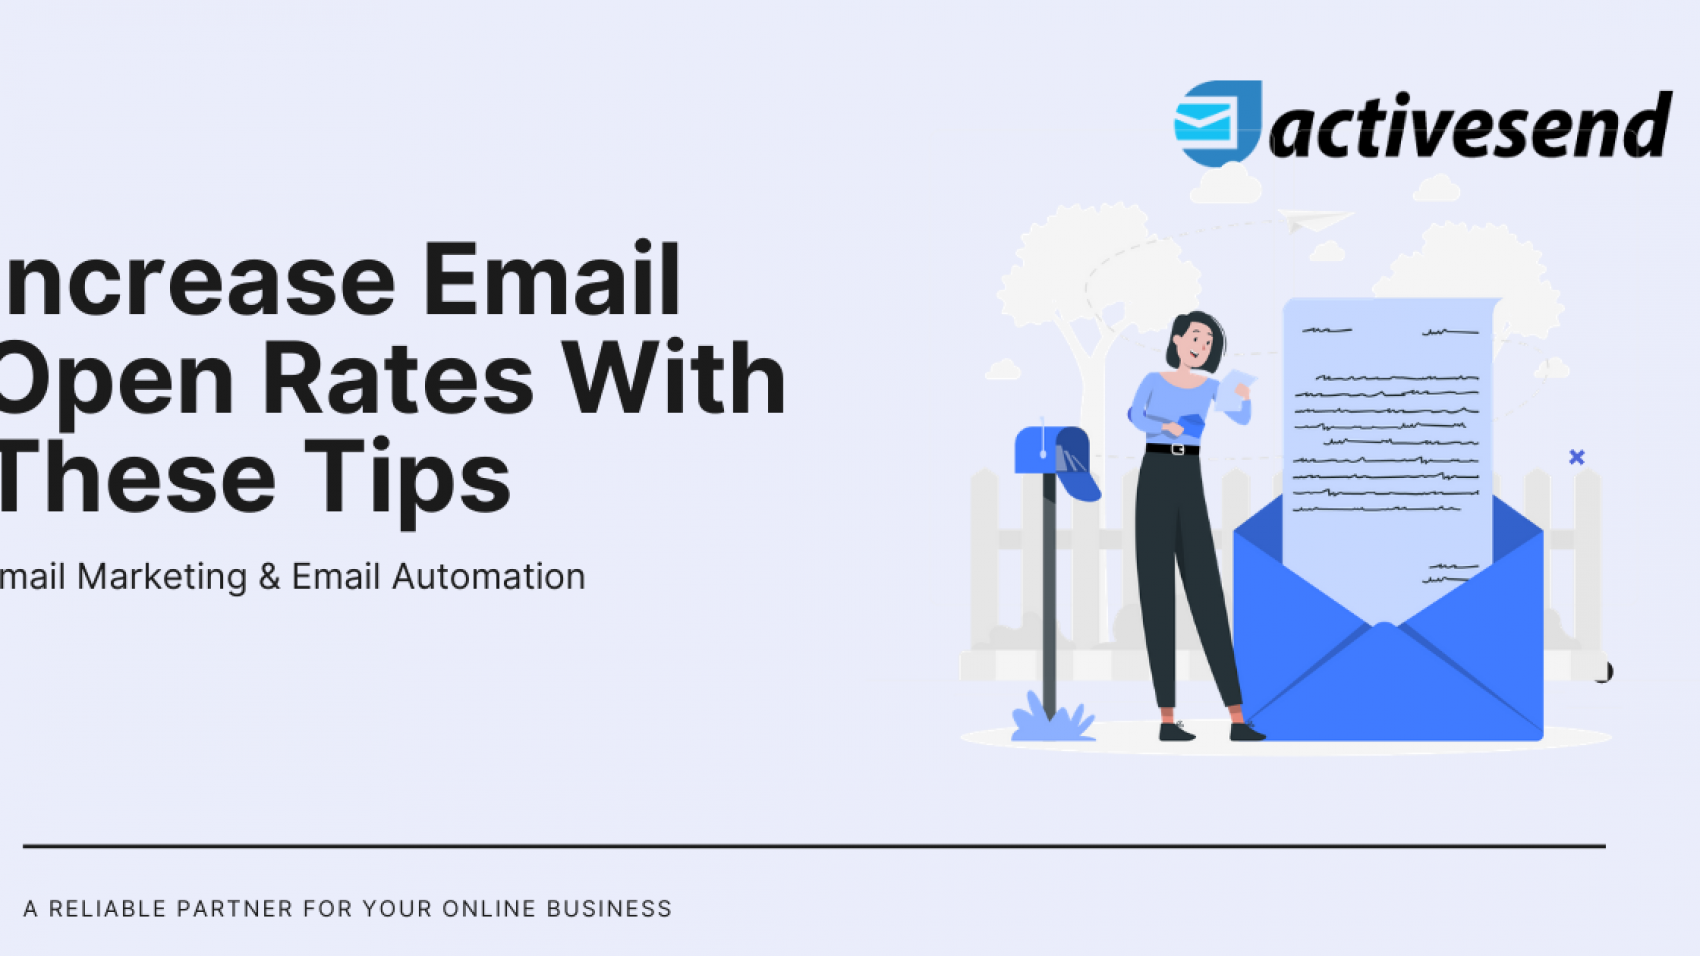 Increase Email Open Rates With These Tips